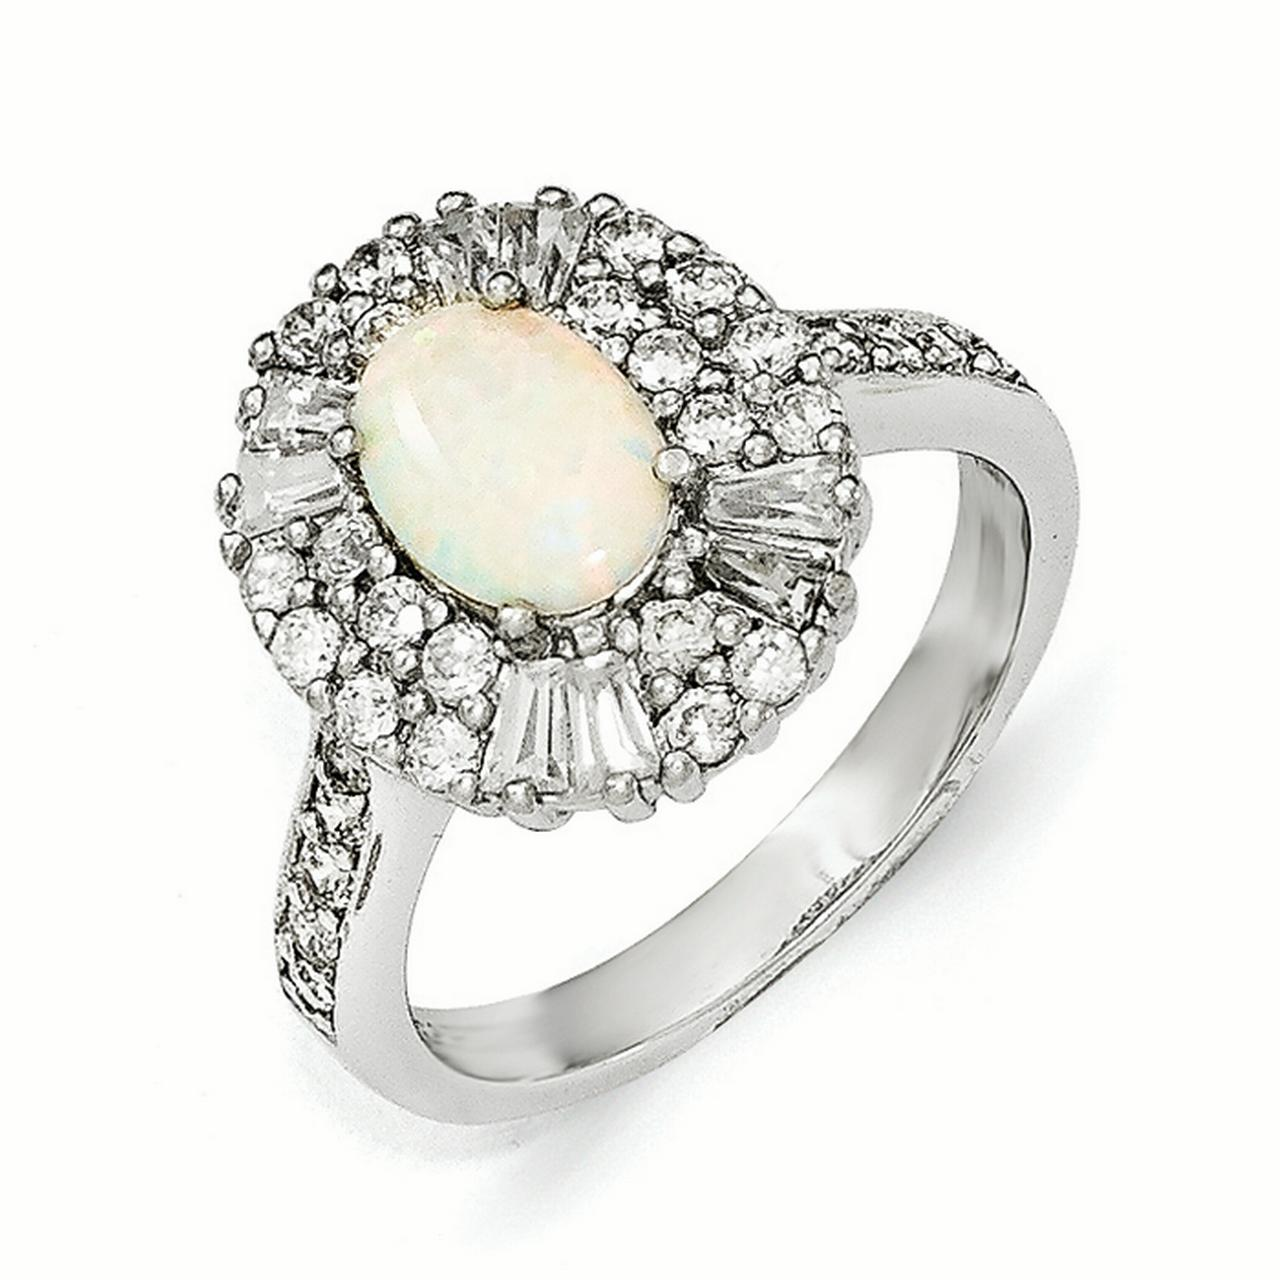 Cheryl M Sterling Silver Cubic Zirconia and Synthetic Opal Ring by Kevin Jewelers